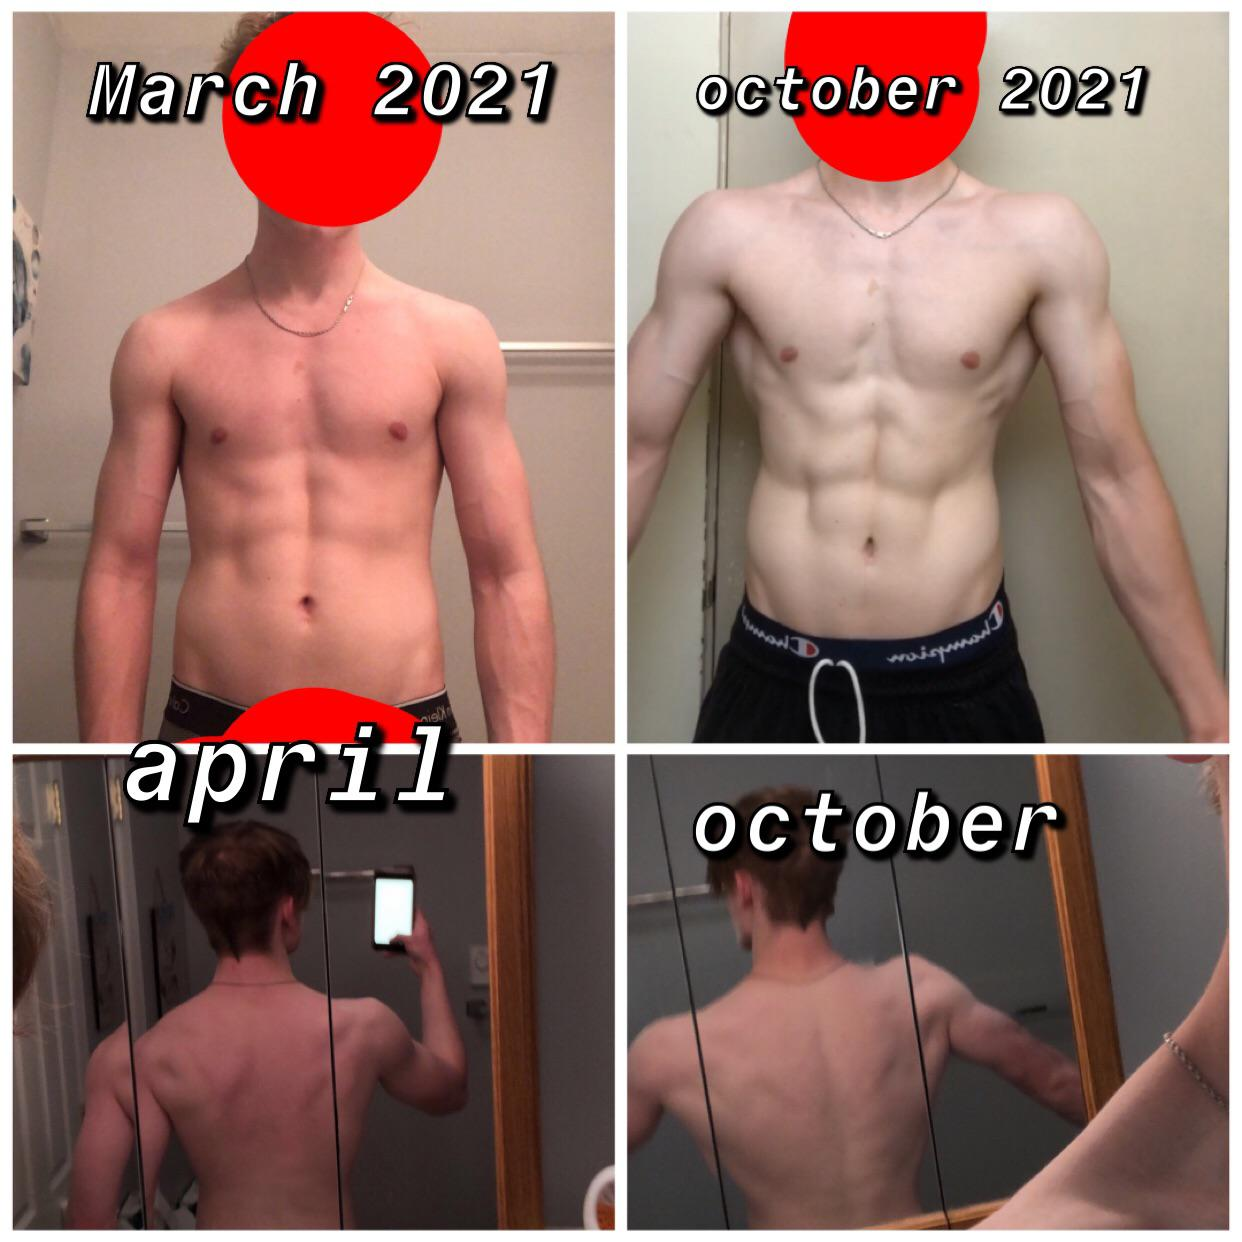 Before and After 5 lbs Weight Gain 5'10 Male 140 lbs to 145 lbs